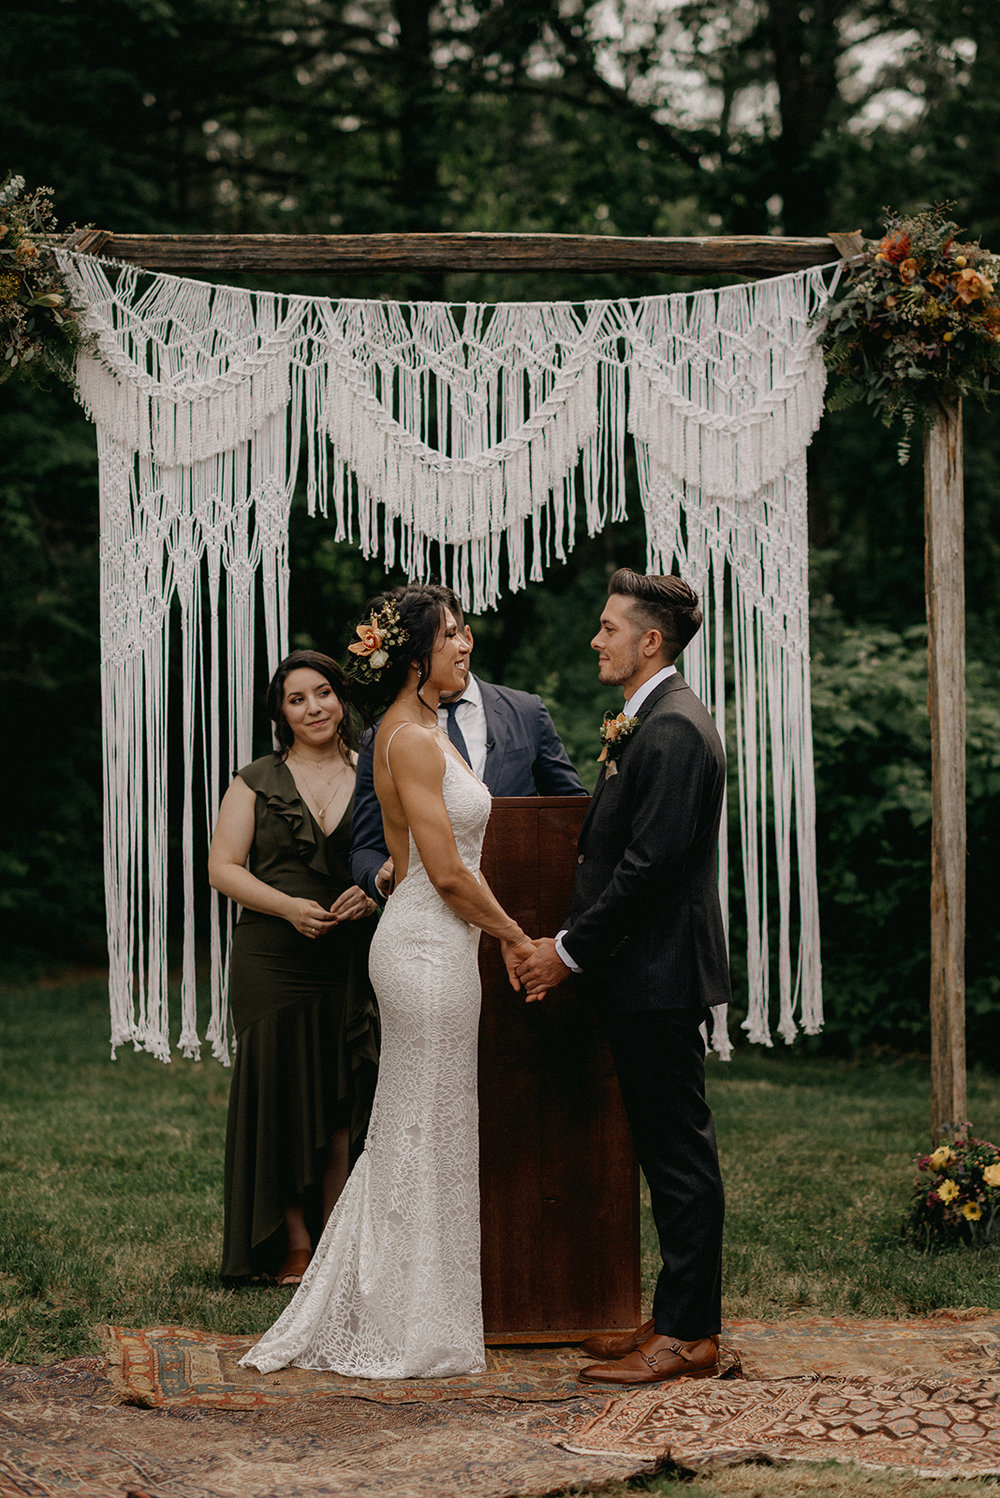 Bride and groom at their macrame wedding ceremony altar with antique rugs - Pearl Weddings & Events